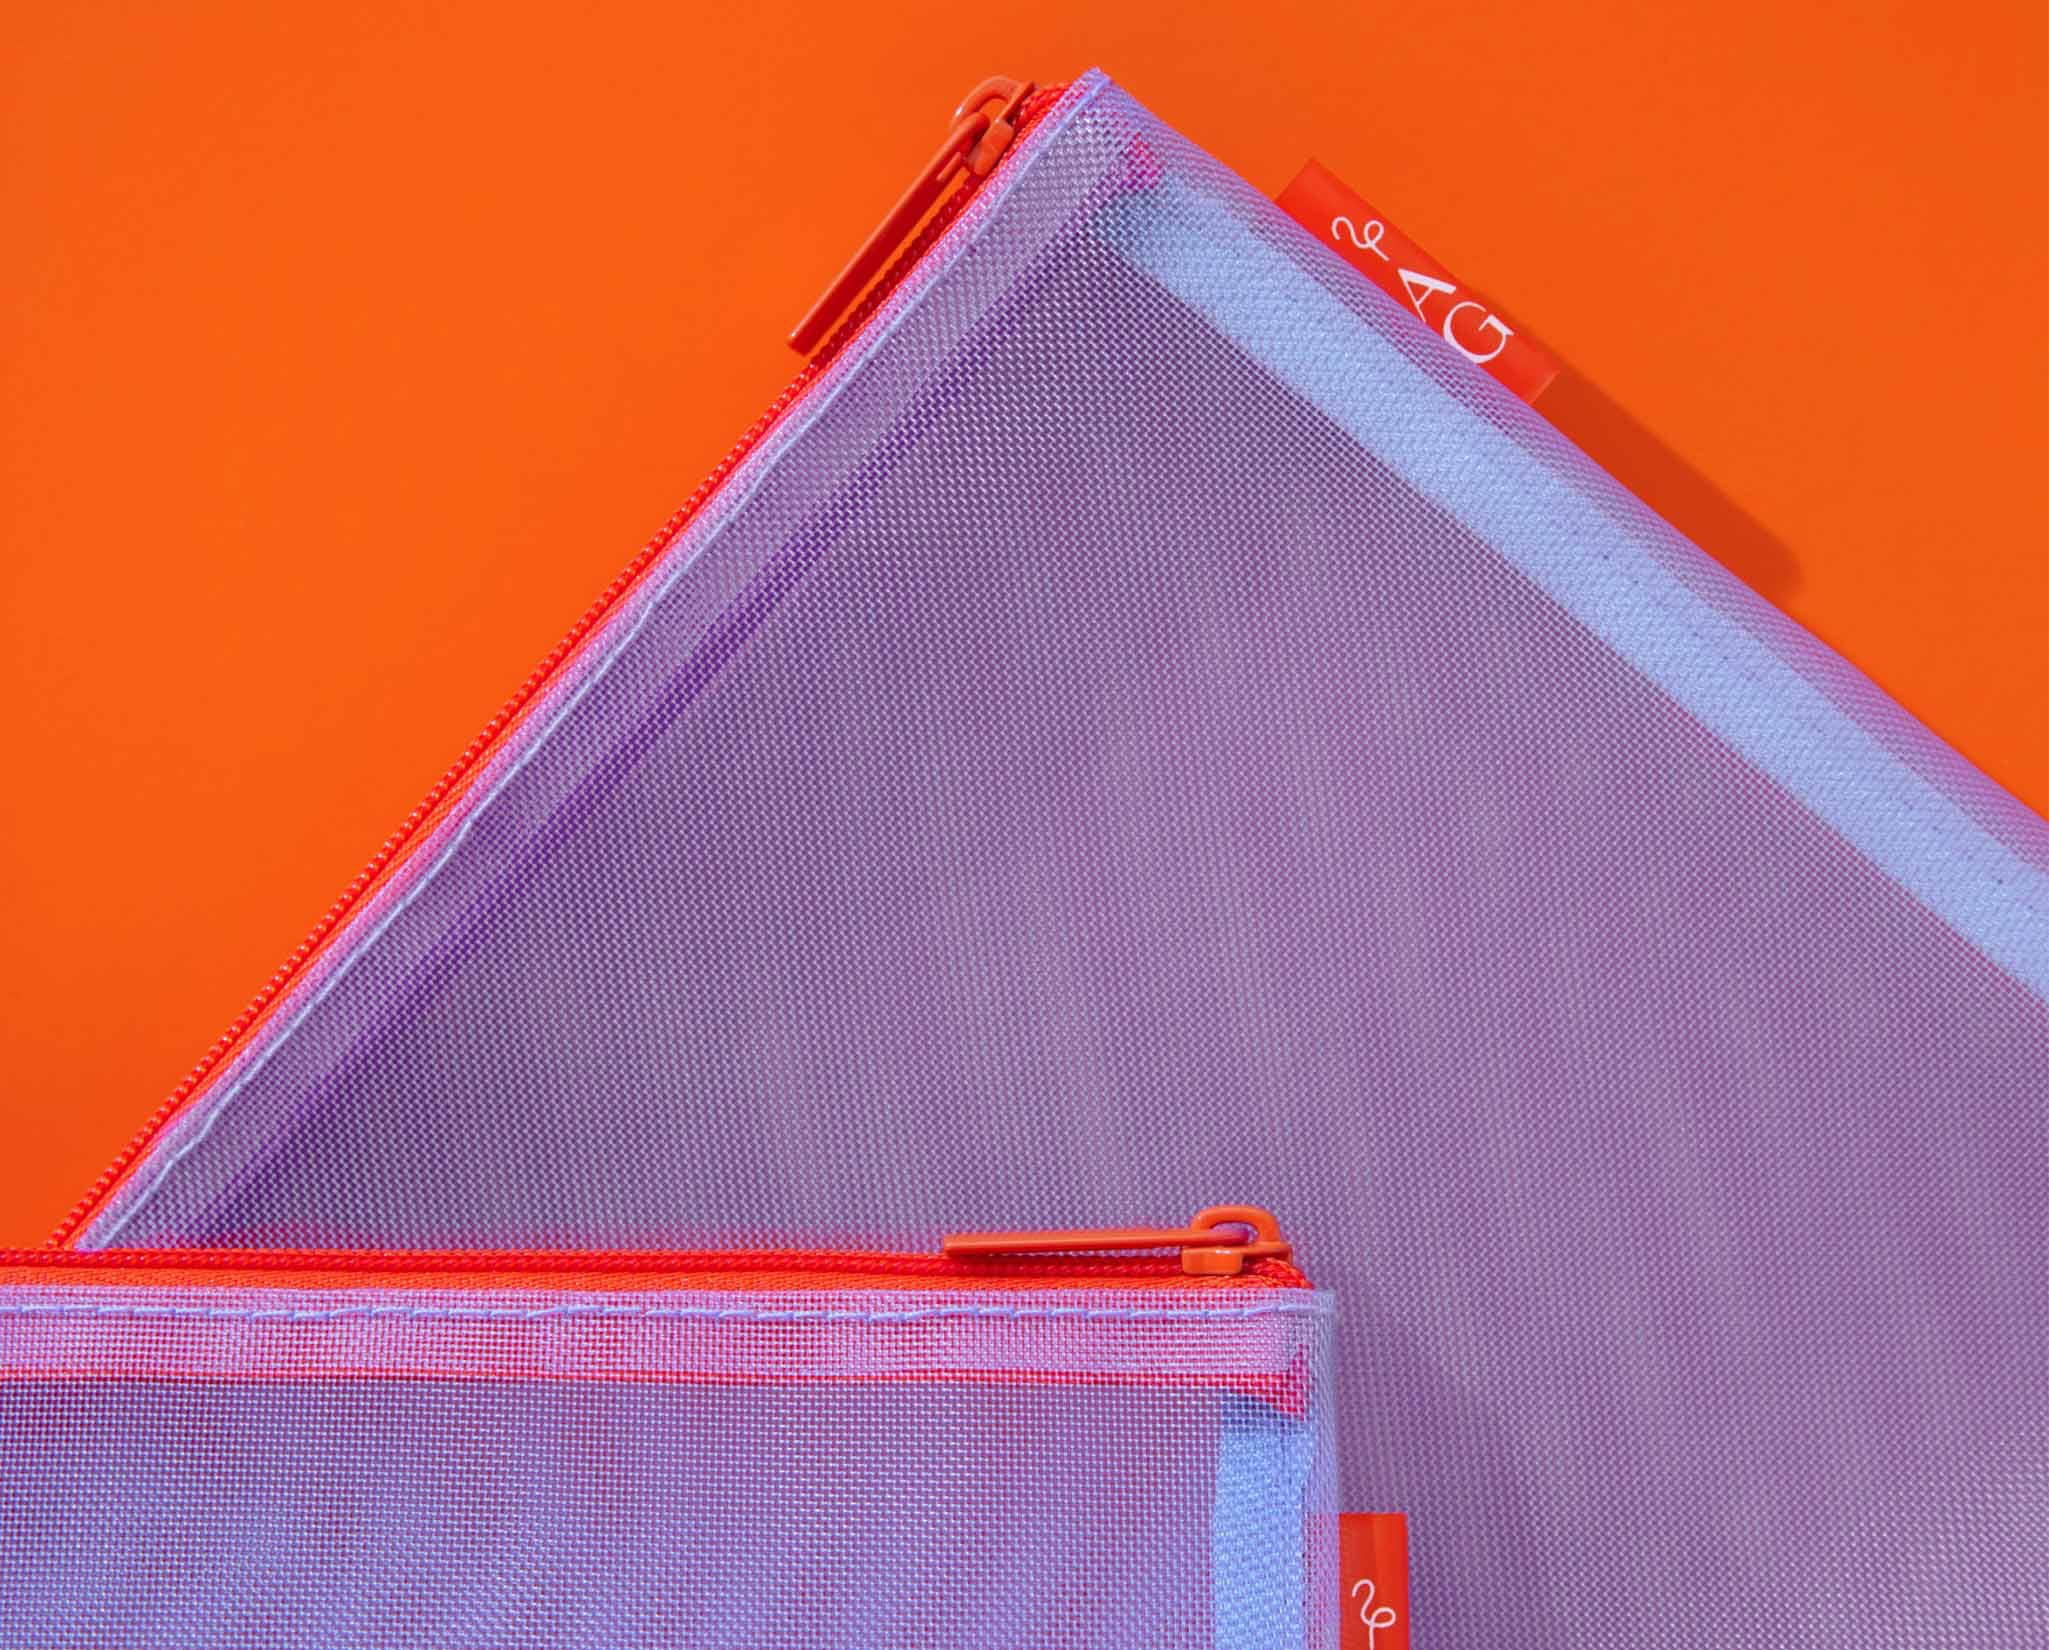 Purple pouch on red background